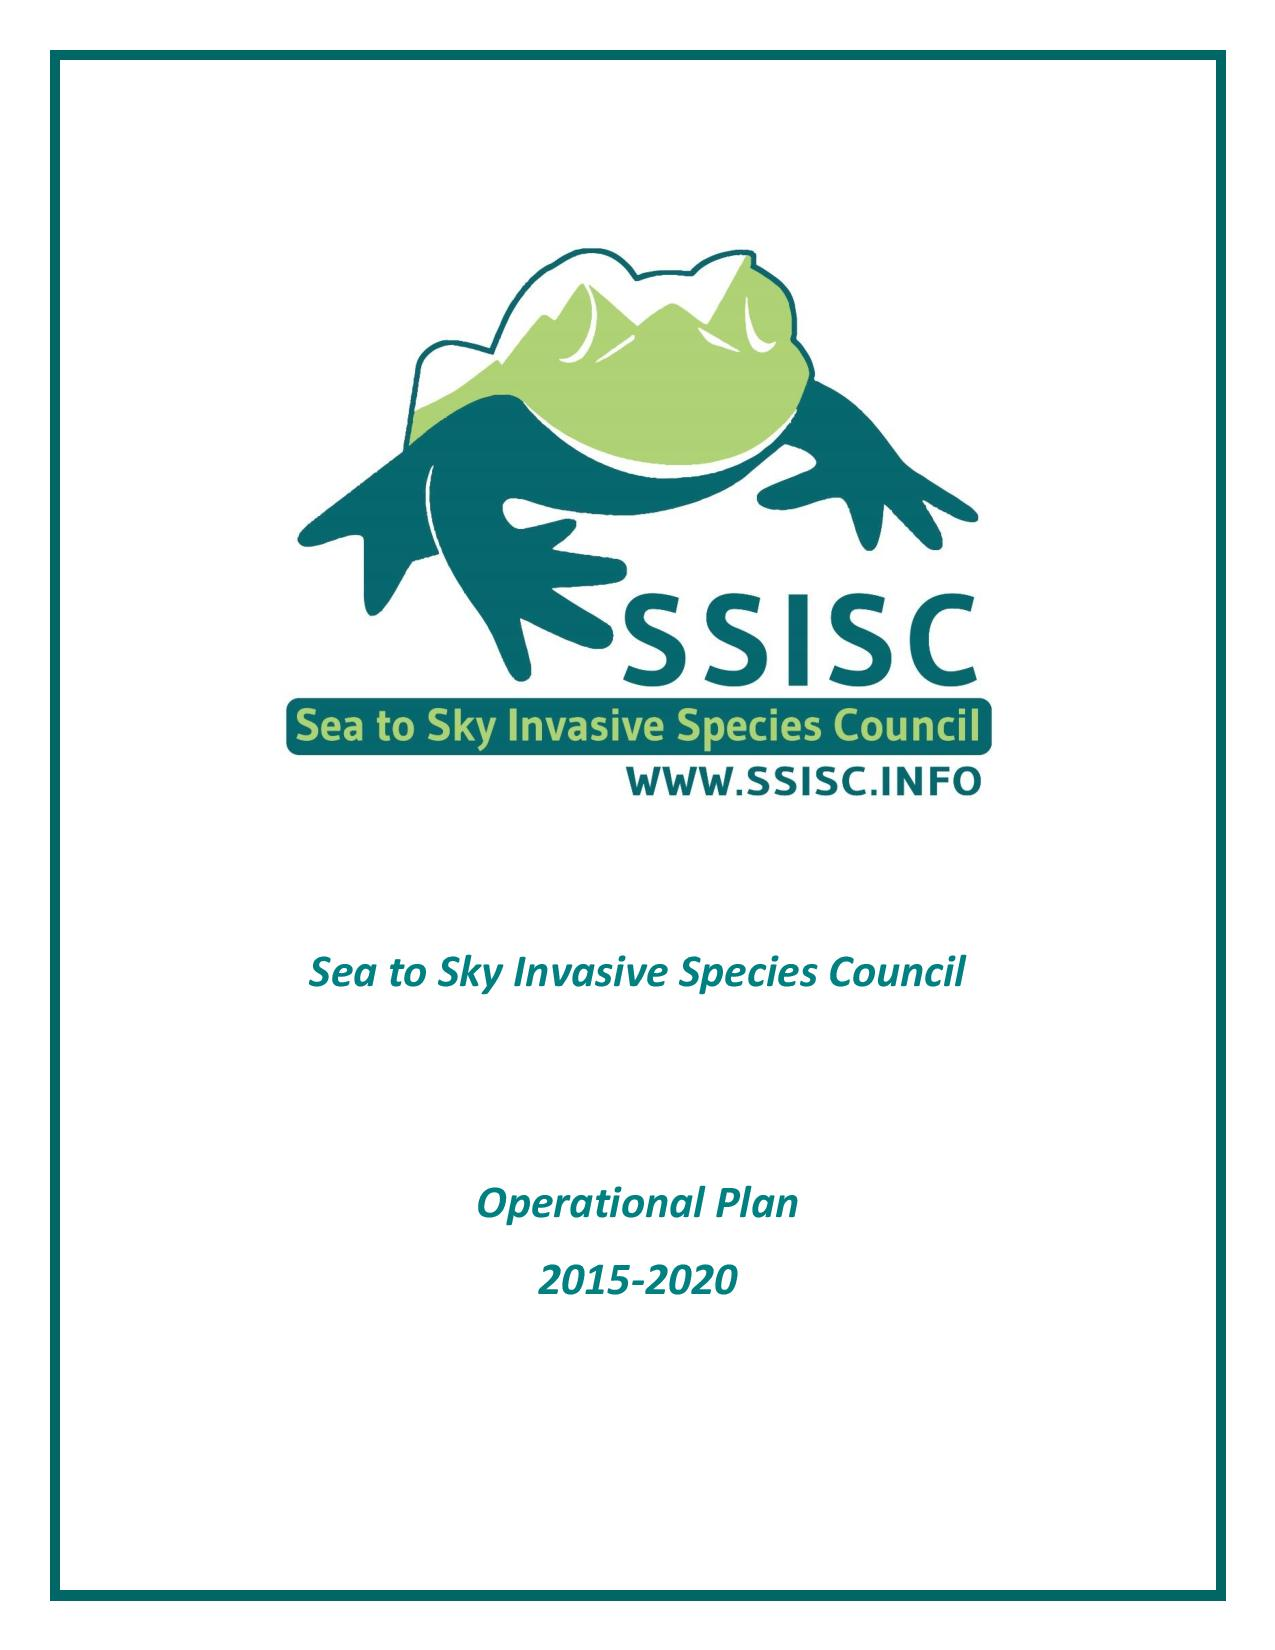 SSISC-Operational-Plan-2015-2020-FINAL-front-page-page-001